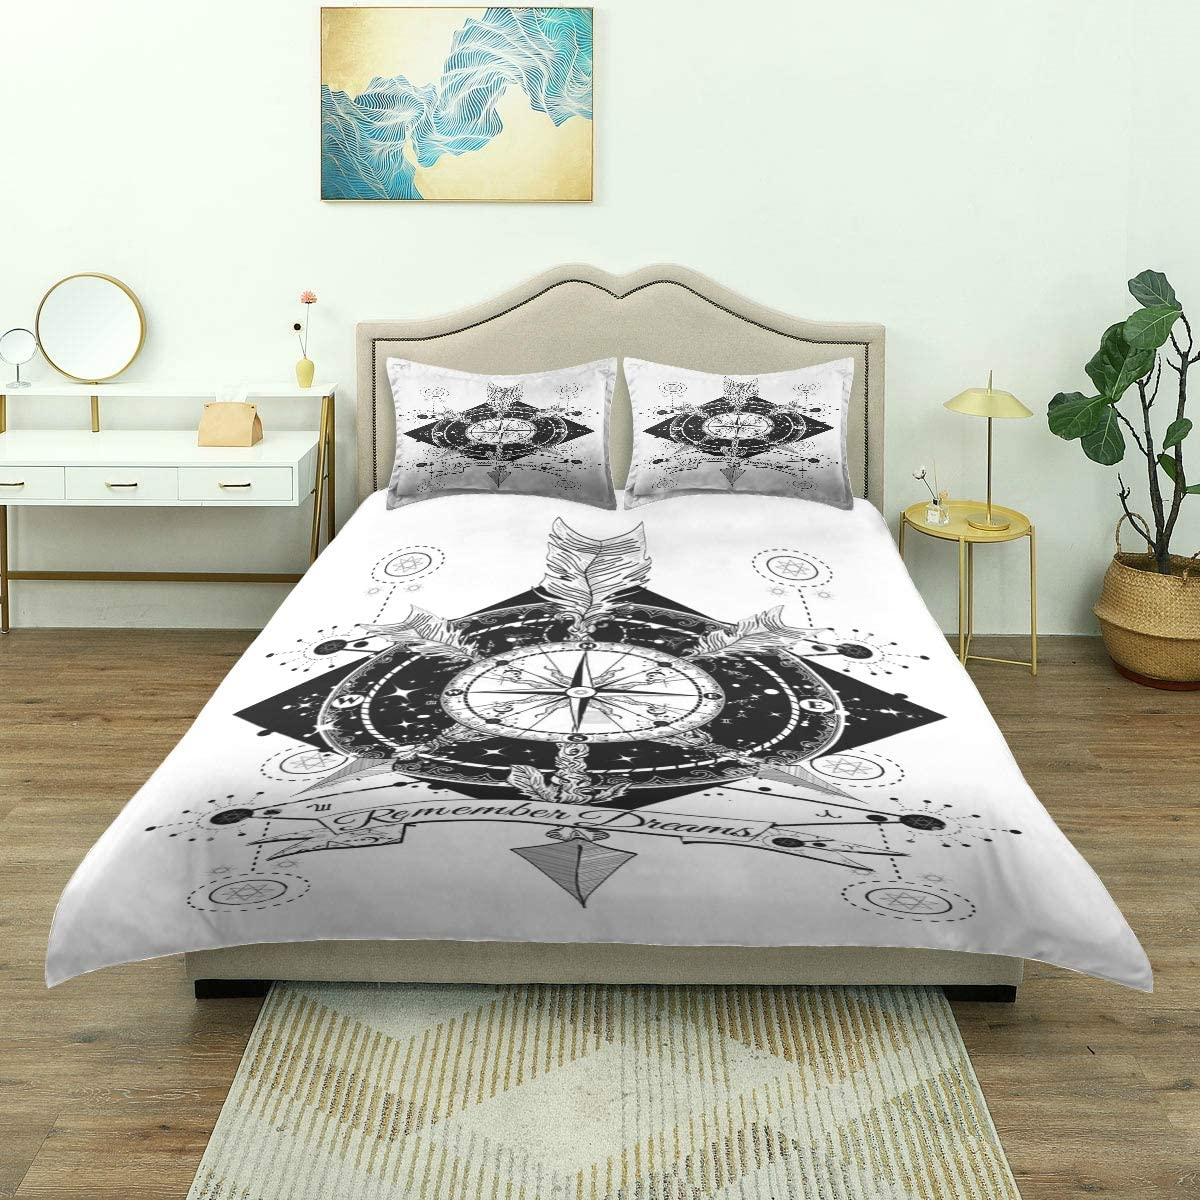 Cotton Duvet Cover Set Vintage Floral Mandala Compas Arrow Retro 3 Piece Comforter Covers King Size Soft Cotton Quilt Cover with 2 Pillow Covers for Mens Womens Hotel Luxury Bedding 90x104in